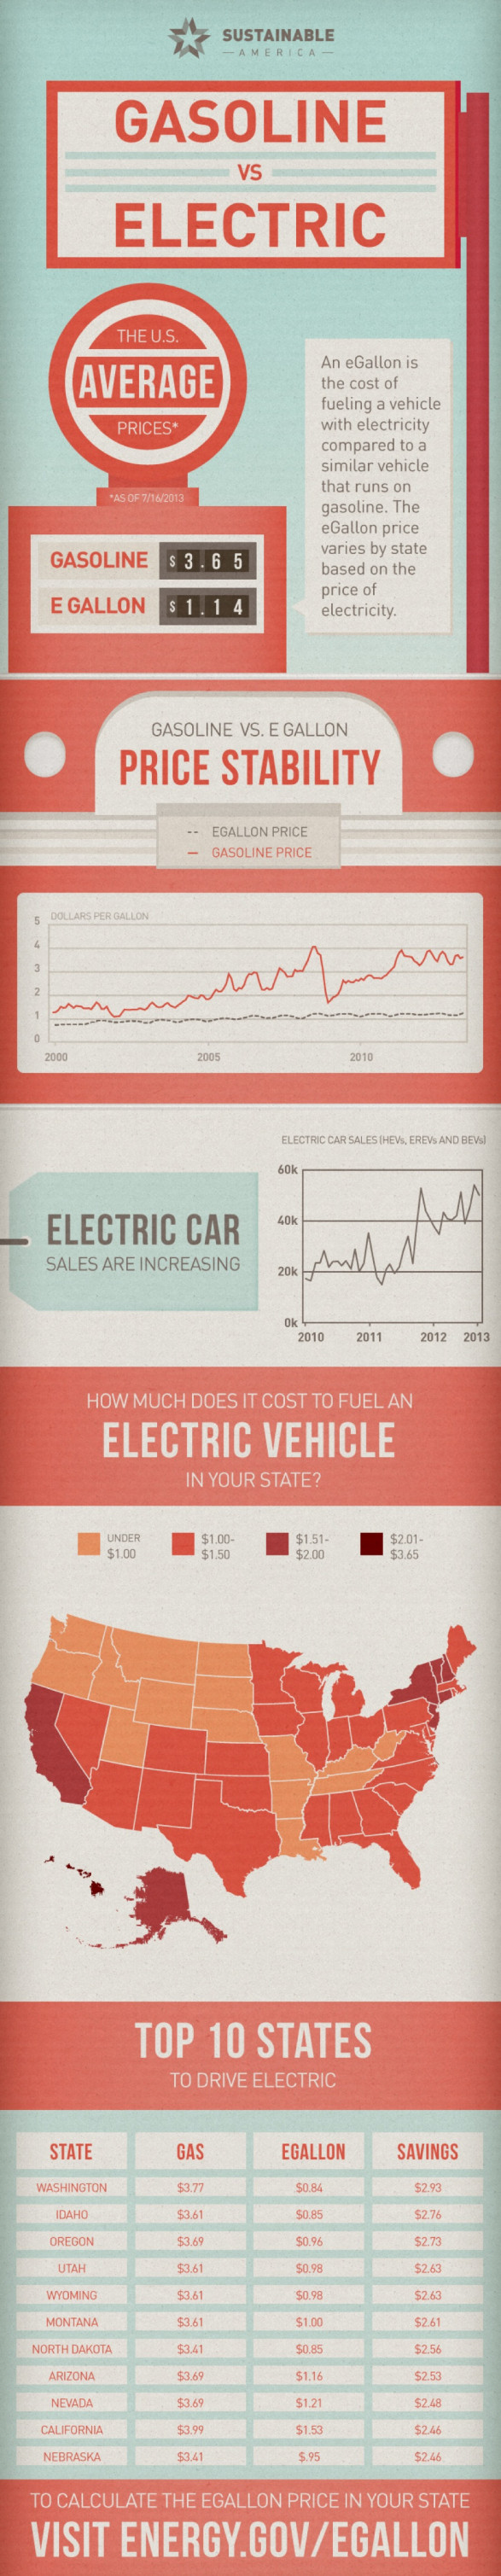 Gasoline vs Electric